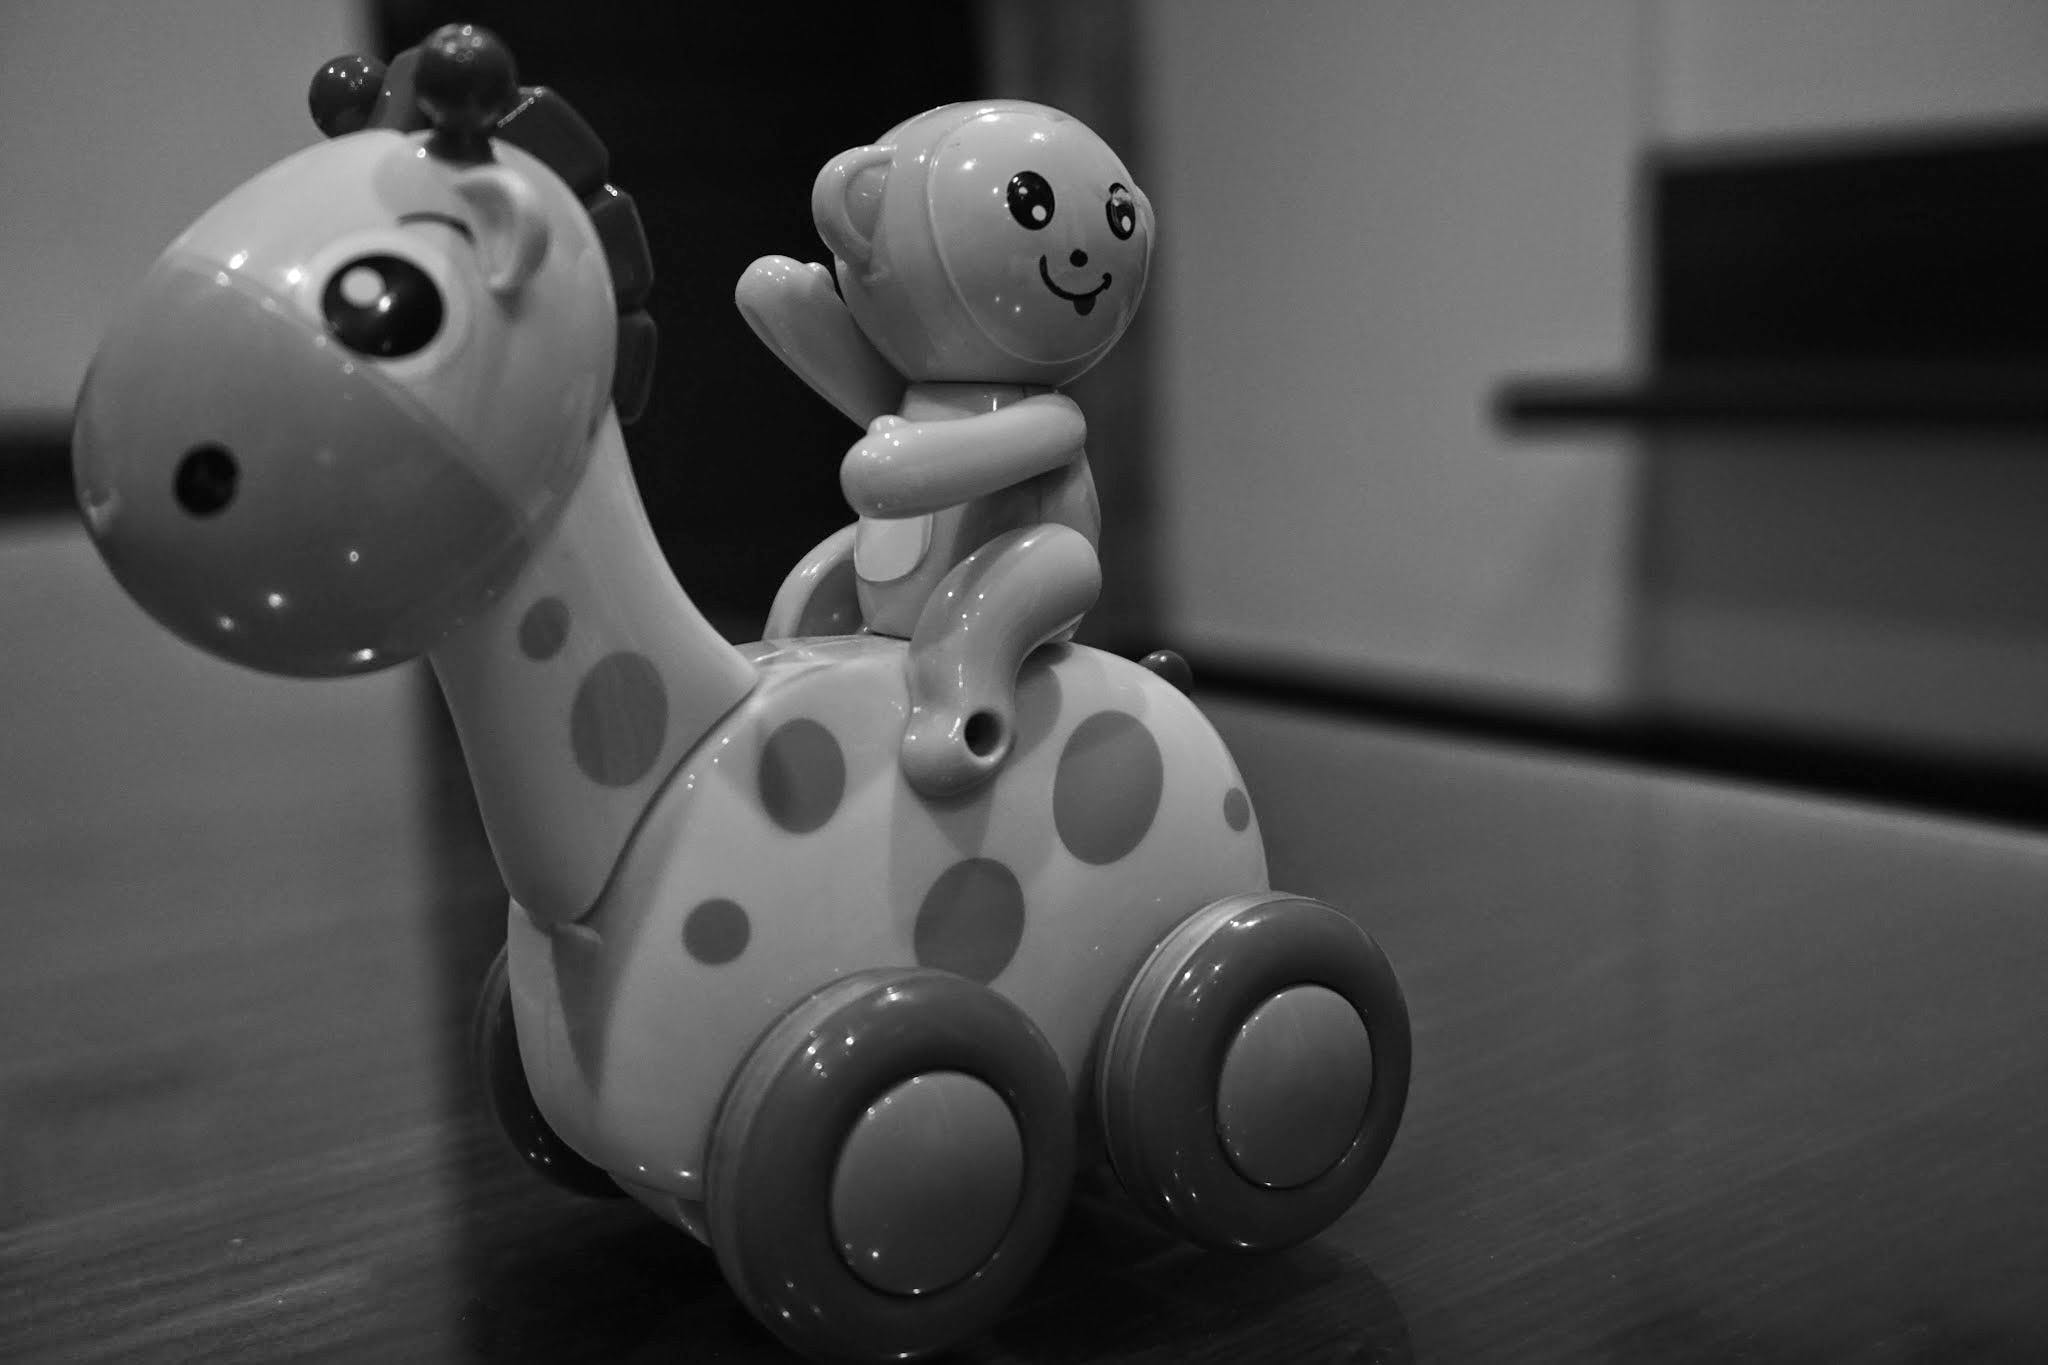 Grayscale Photo of Giraffe and Monkey Plastic Toy on Floor